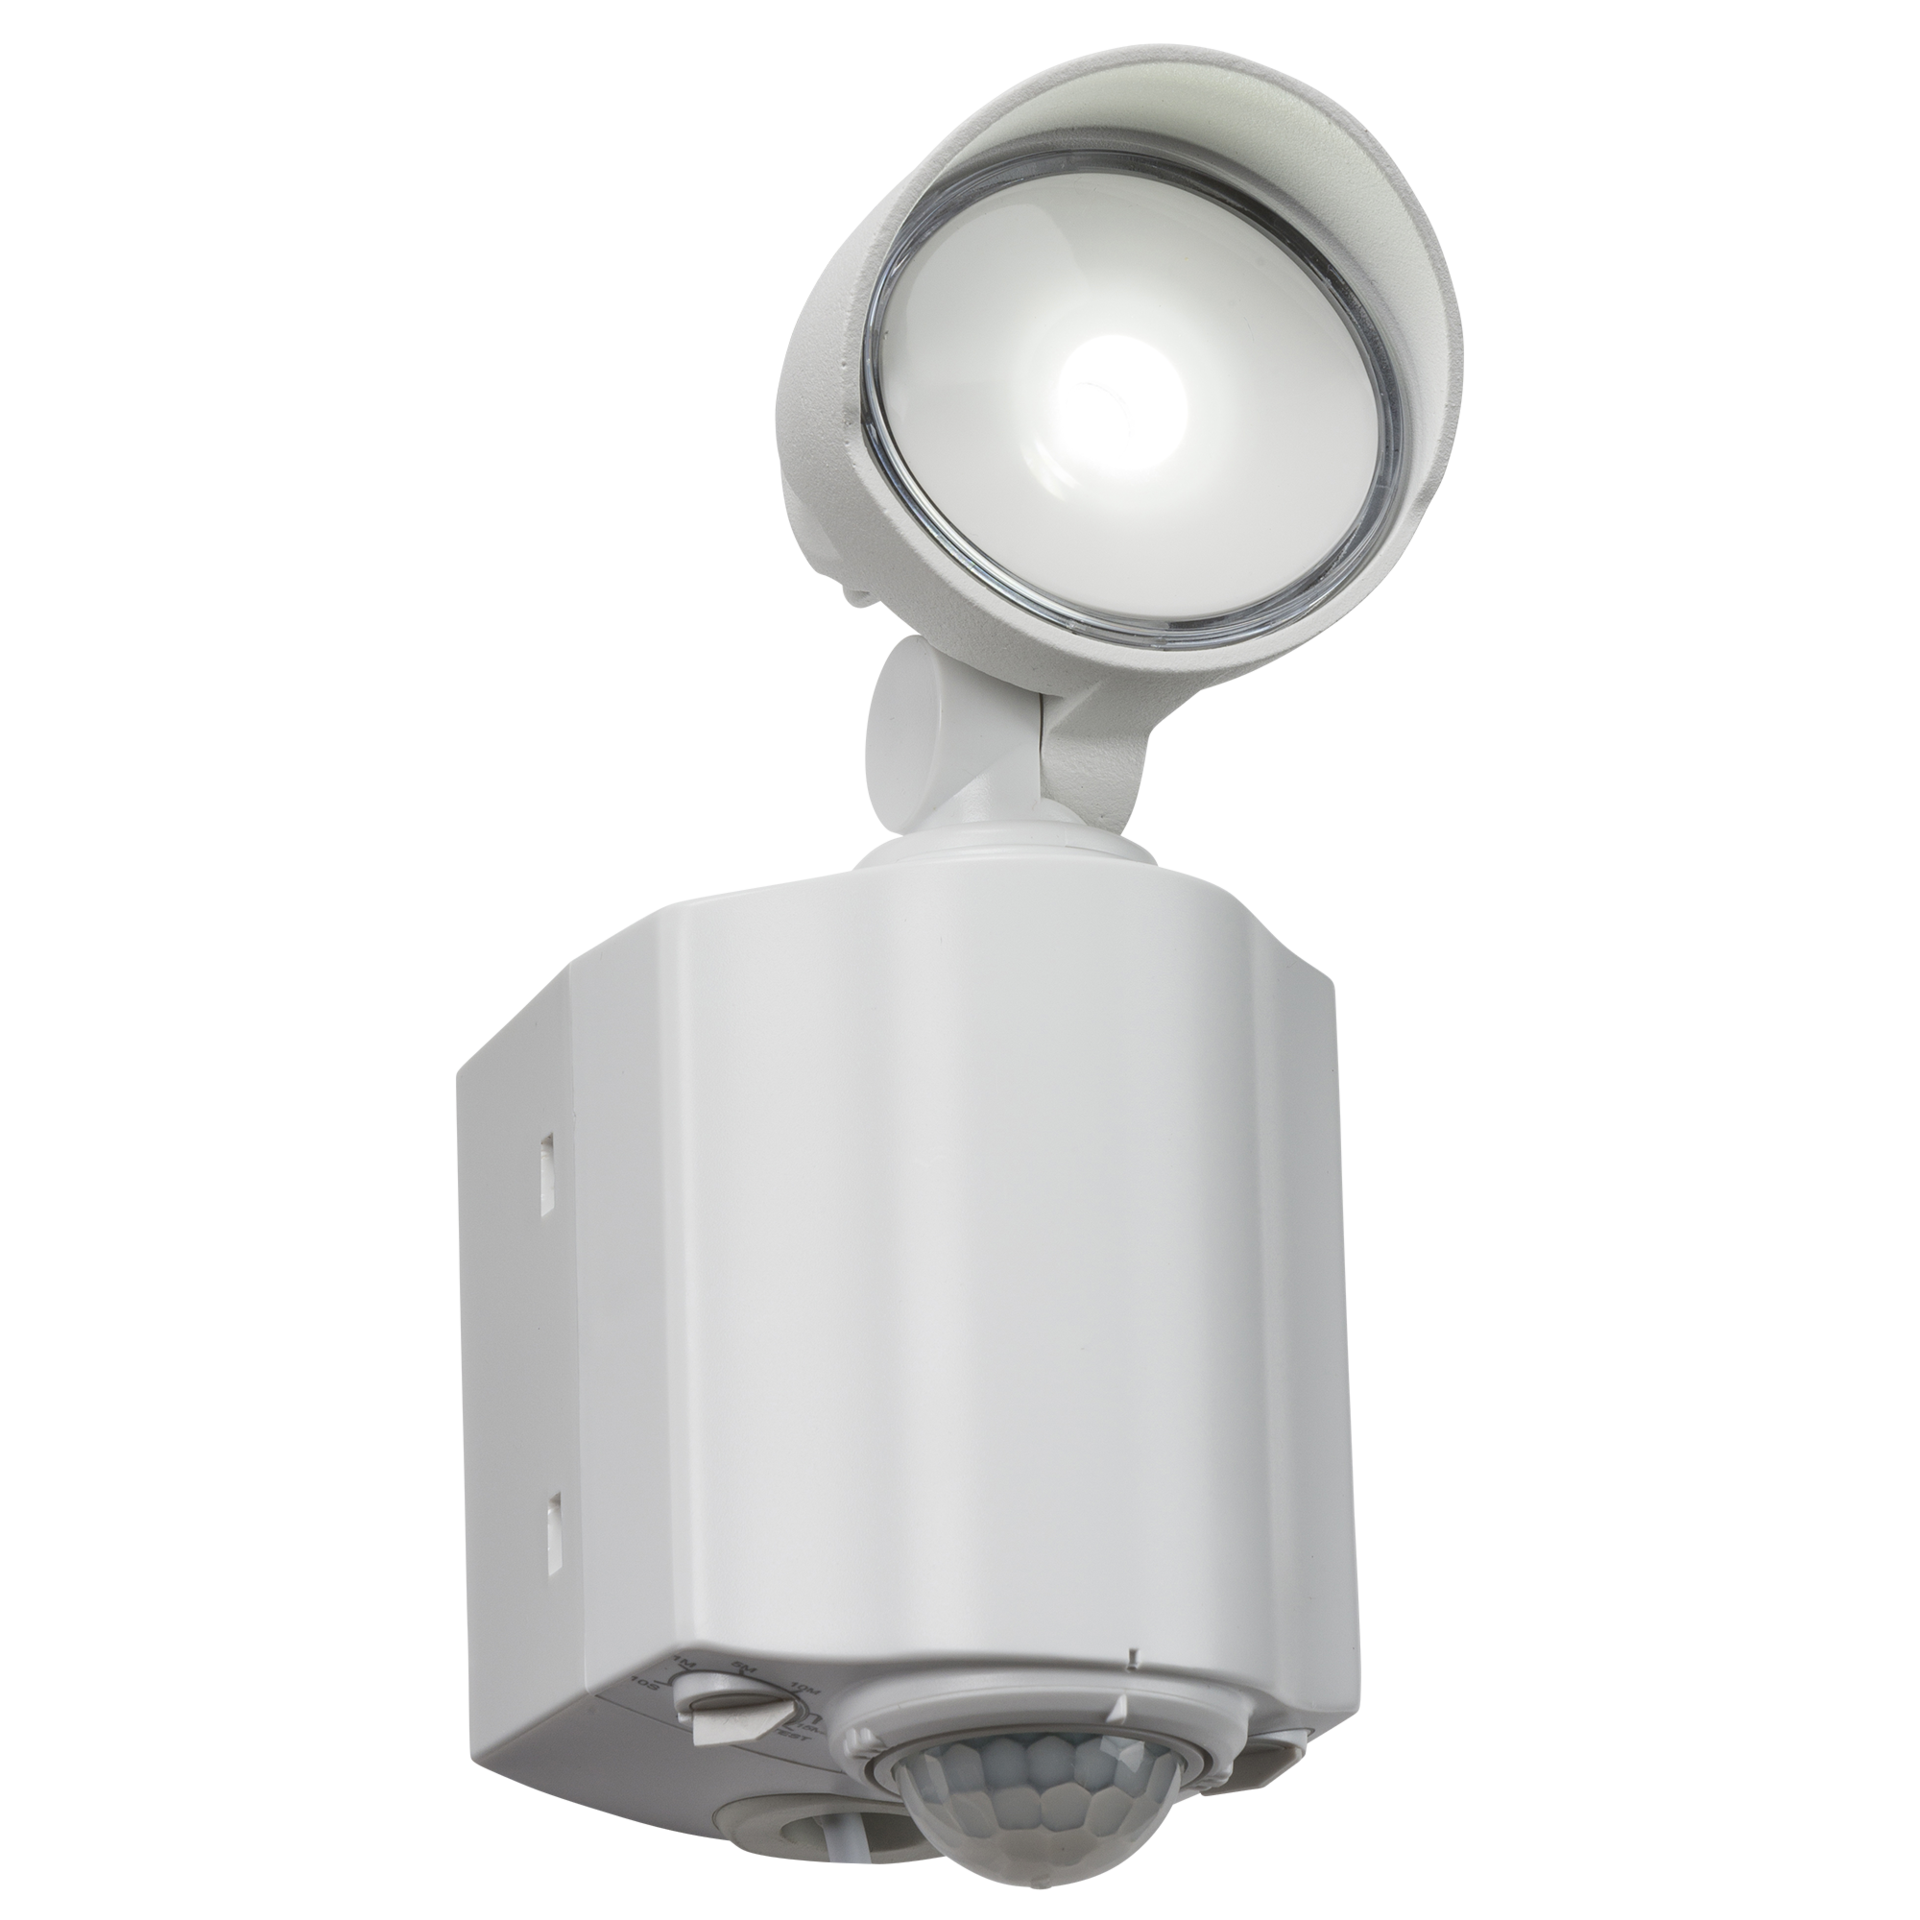 230V IP44 8W LED Single Spot White Security Light with PIR